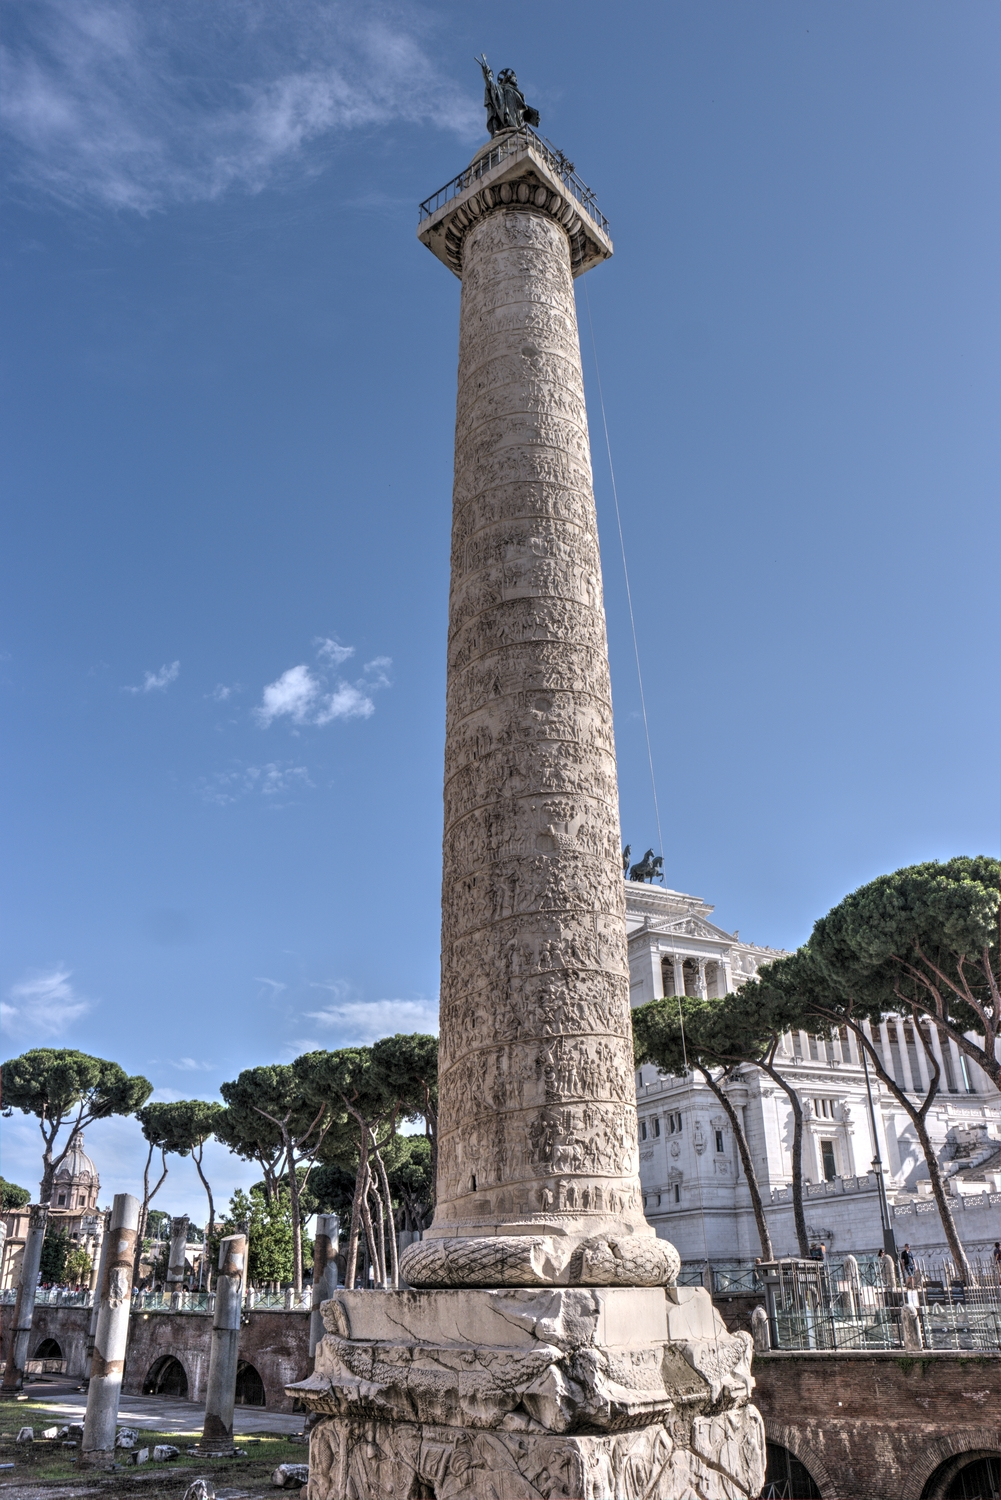 Trajan's Column in Rome - the model for the Column of Theodosius in Constantinople